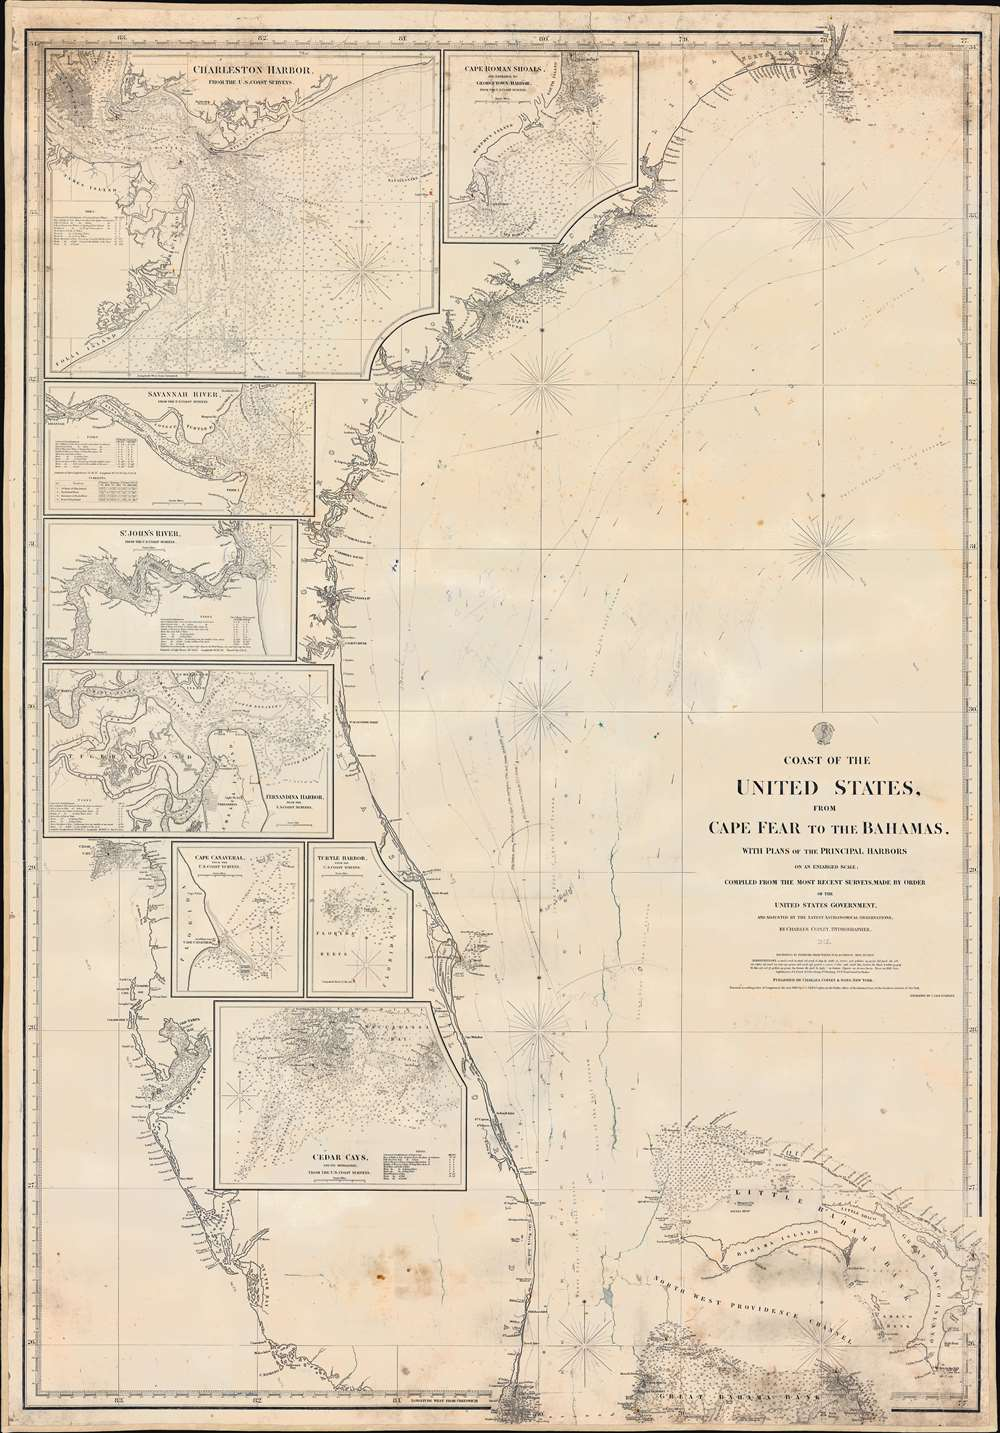 Coast of the United States from Cape Fear to the Bahamas, with plans of the Principal Harbors on an Enlarged Scale; Compiled from the most Recent Surveys, Made by order of the United States Government, and Adjusted by the Latest Astronomical Observations. - Main View